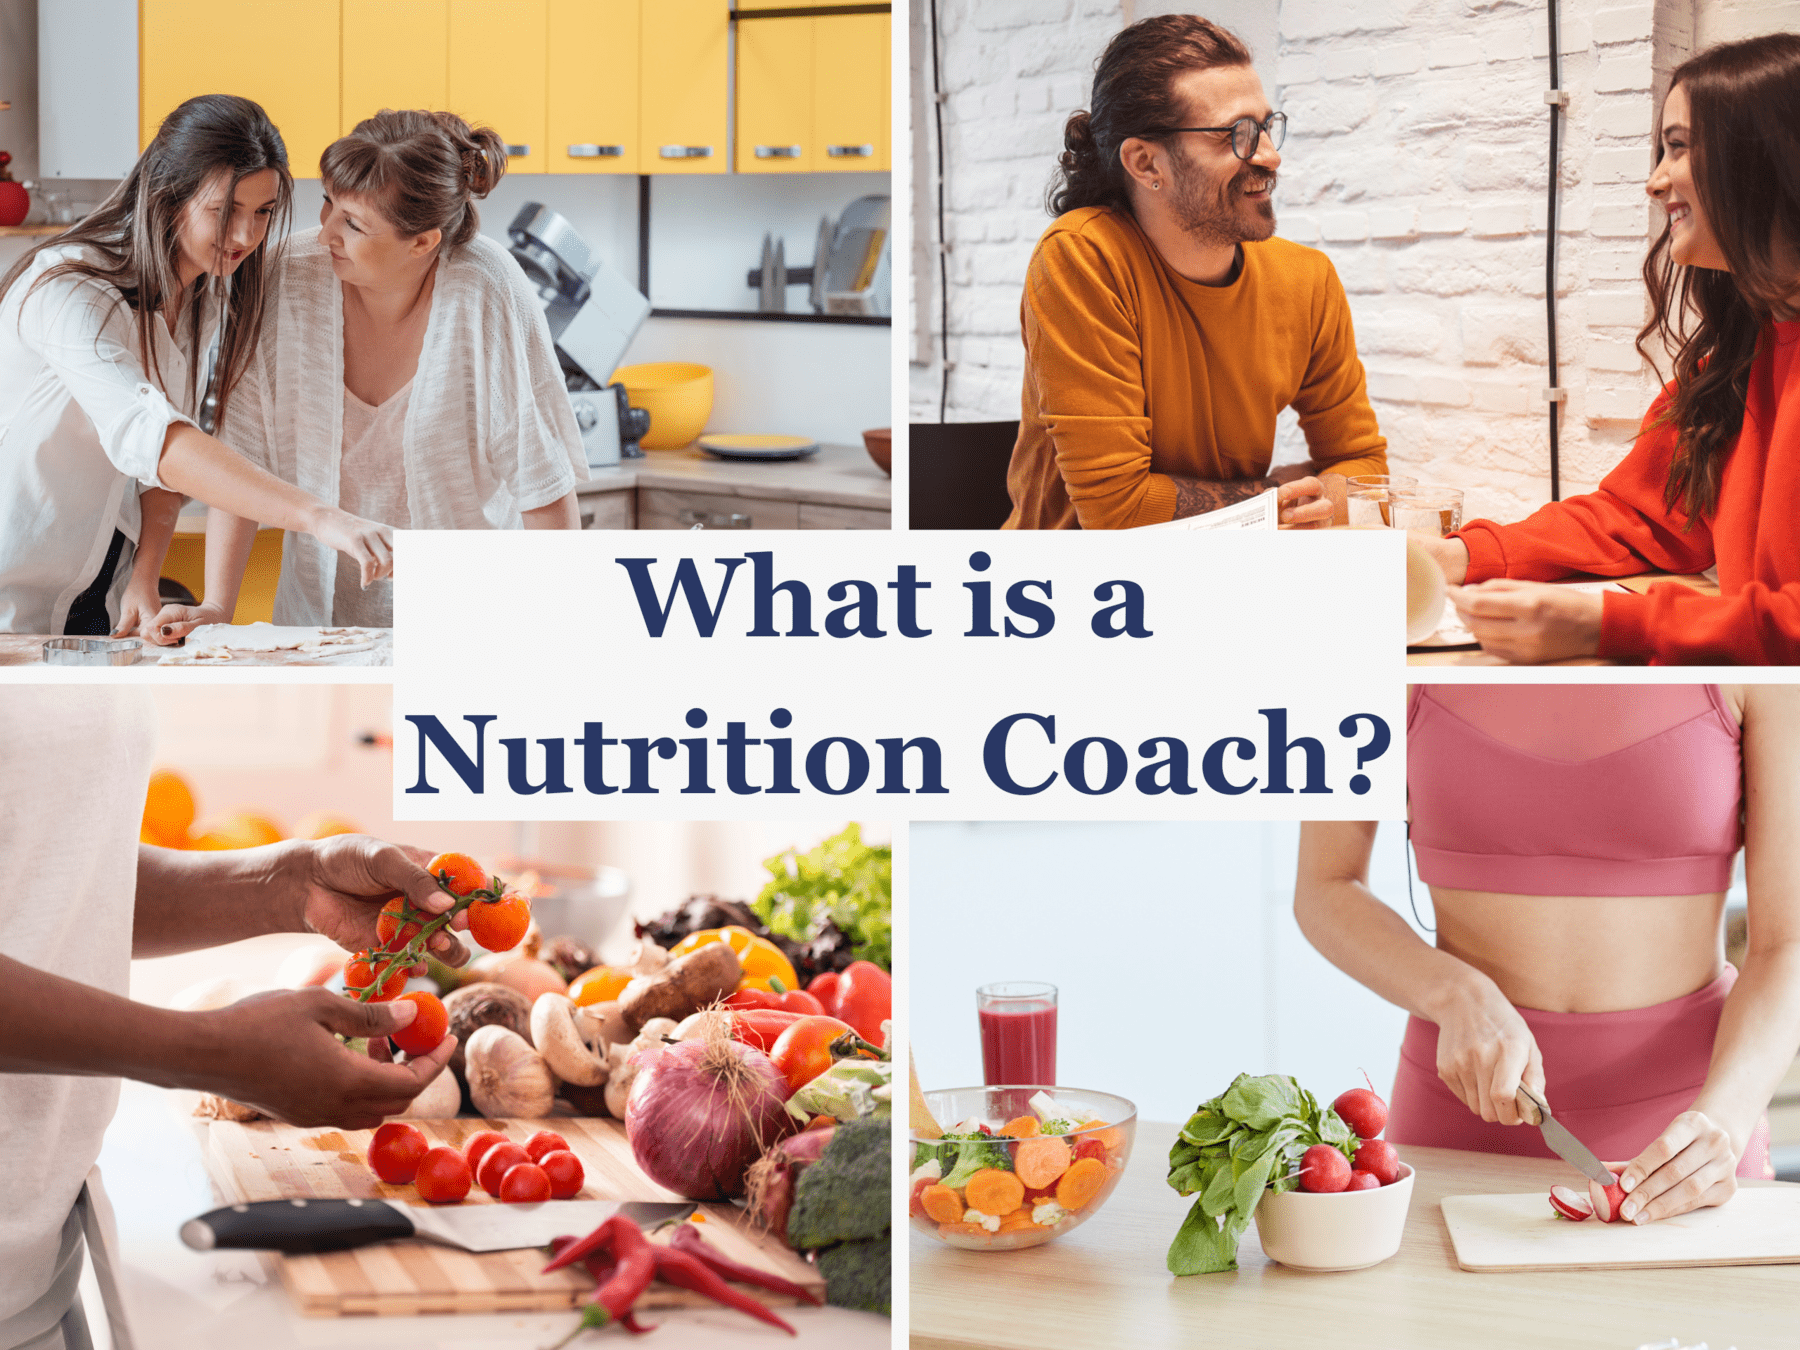 What is a nutrition coach